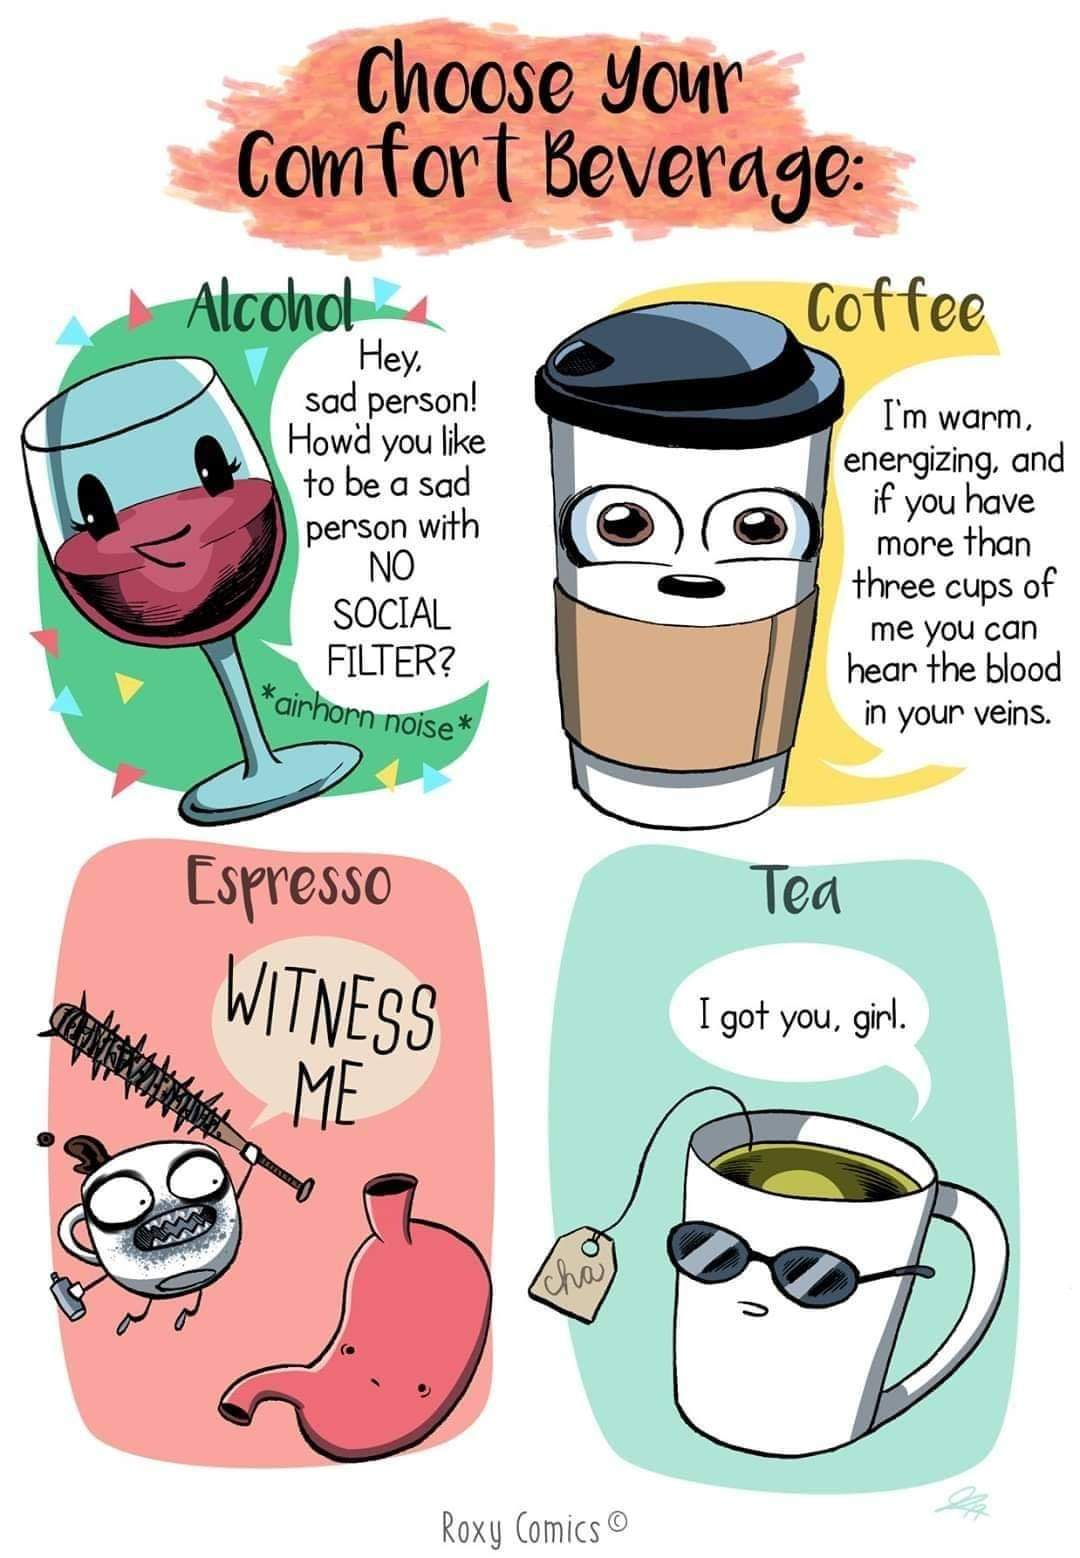 I must drink too much coffee cuz I dont hear my blood &I regularly drink more than 3 cups - meme